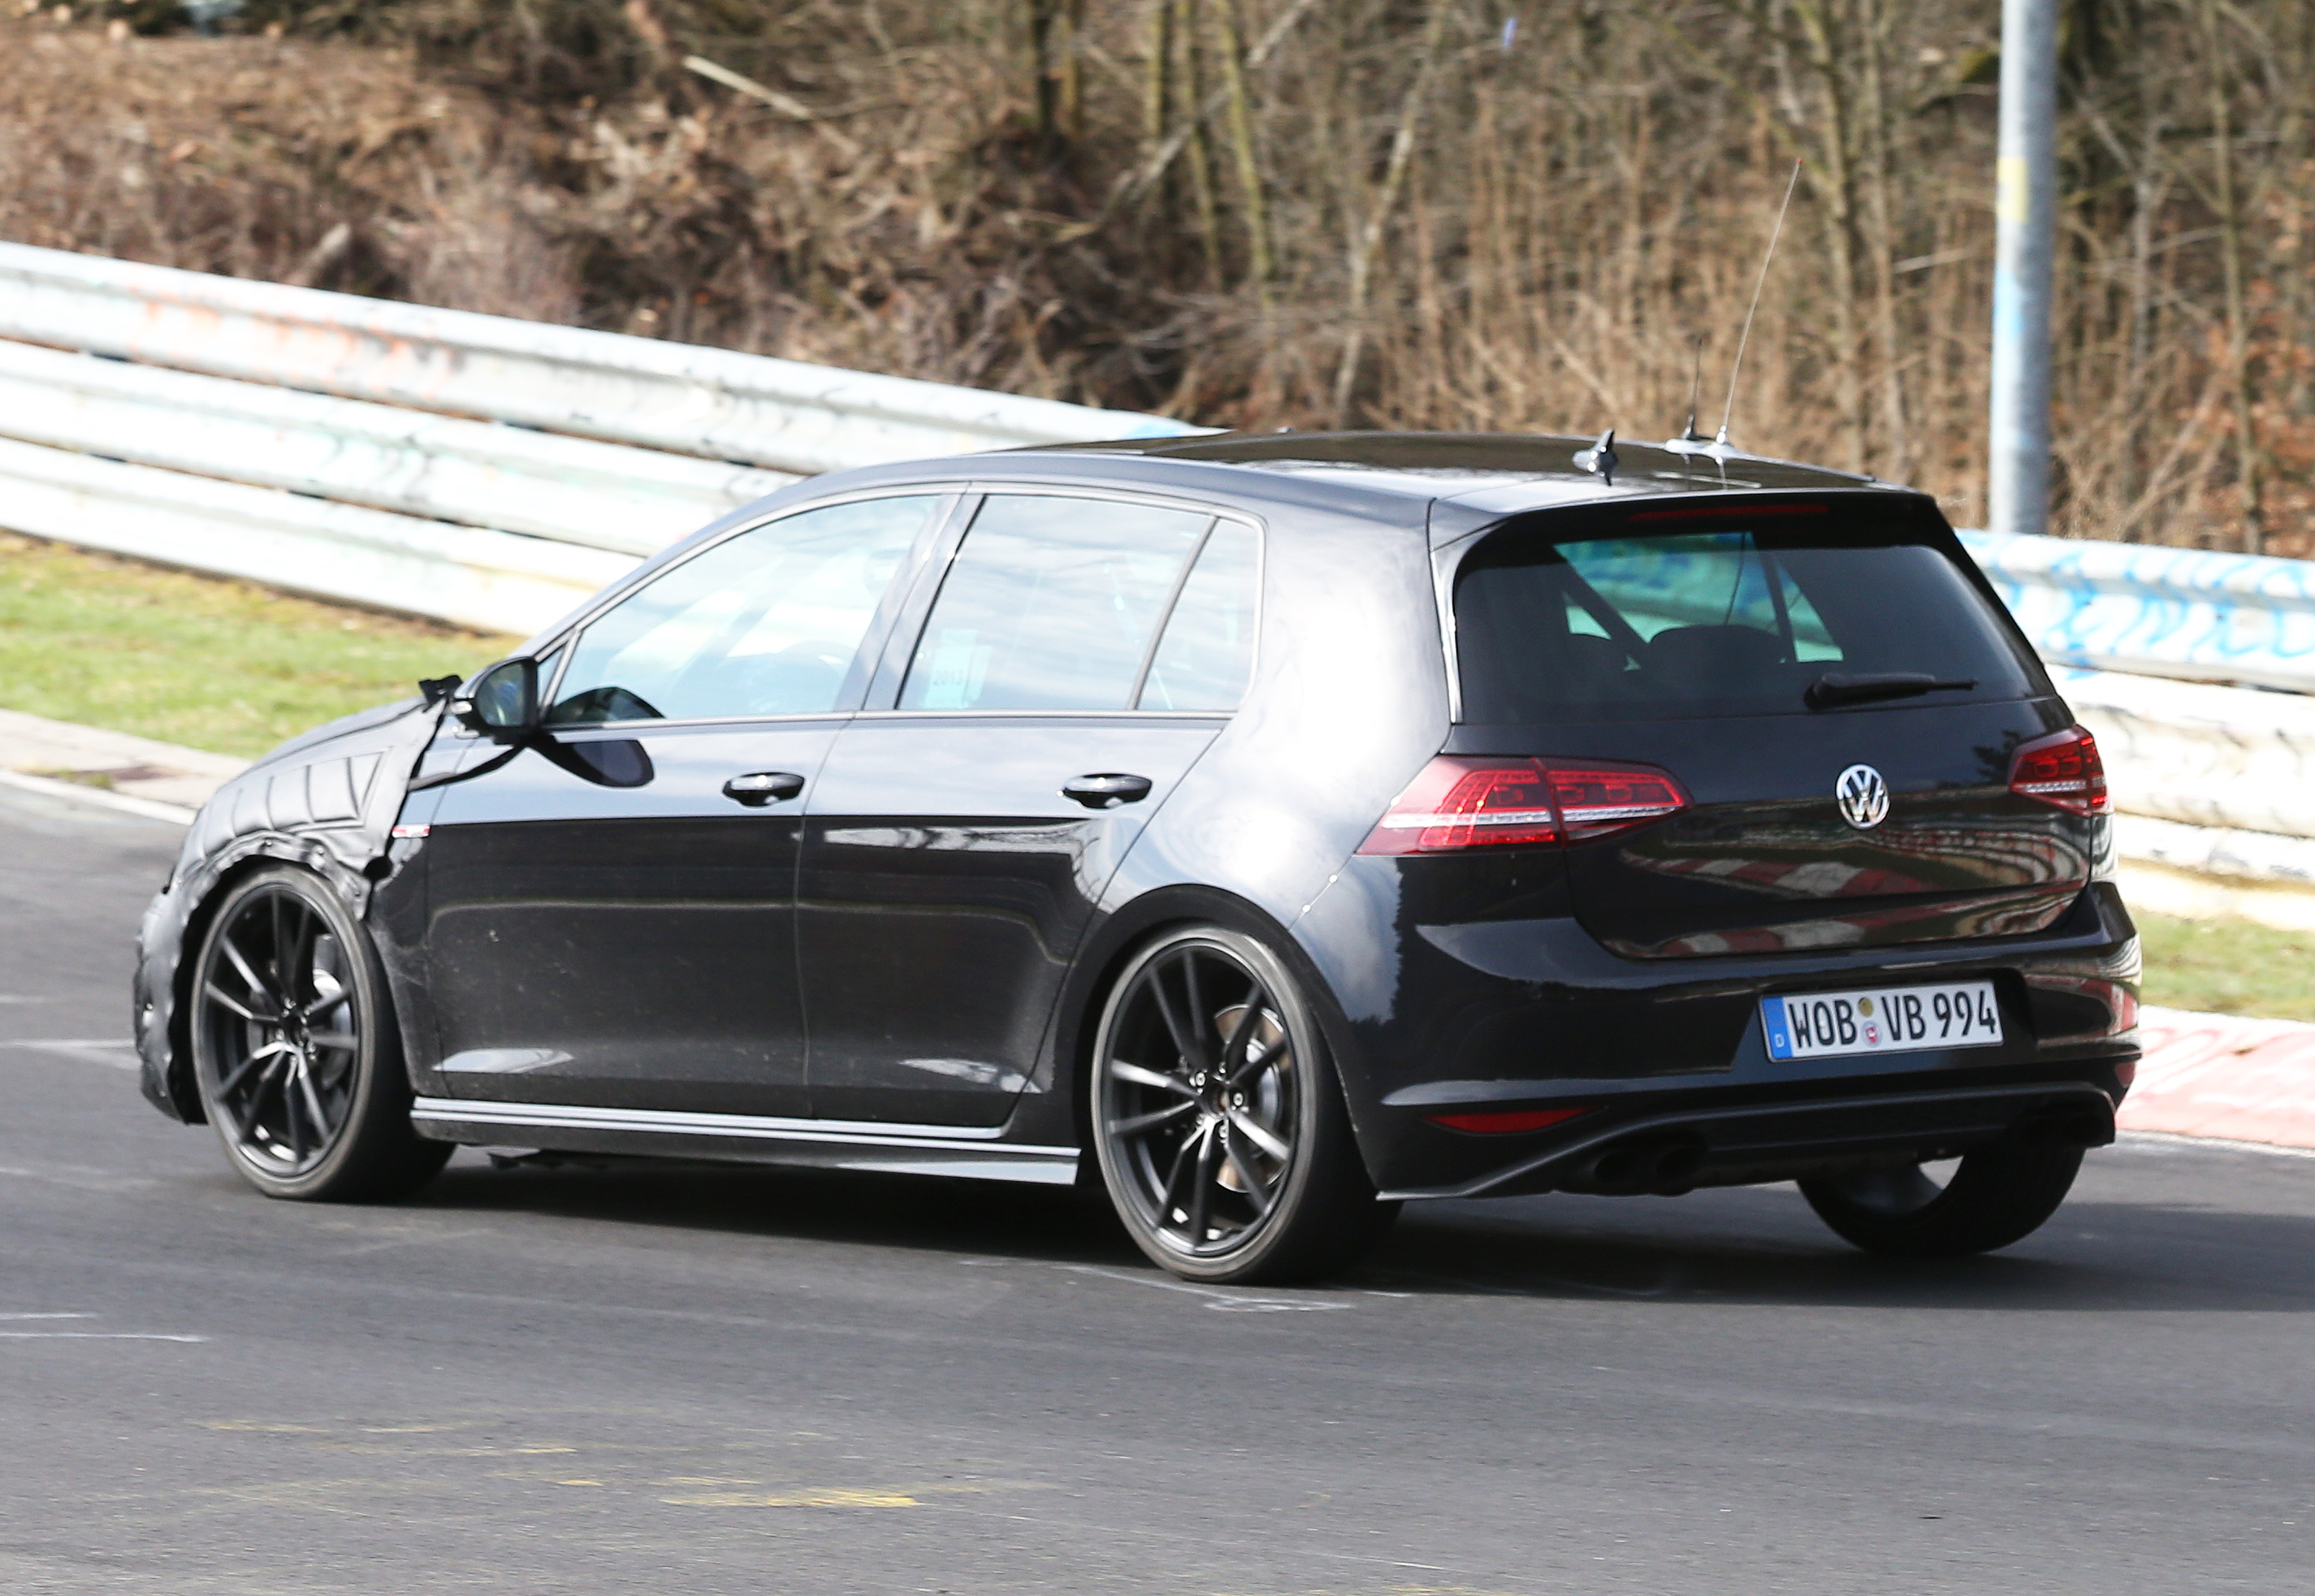 volkswagen-golf-7-R-006